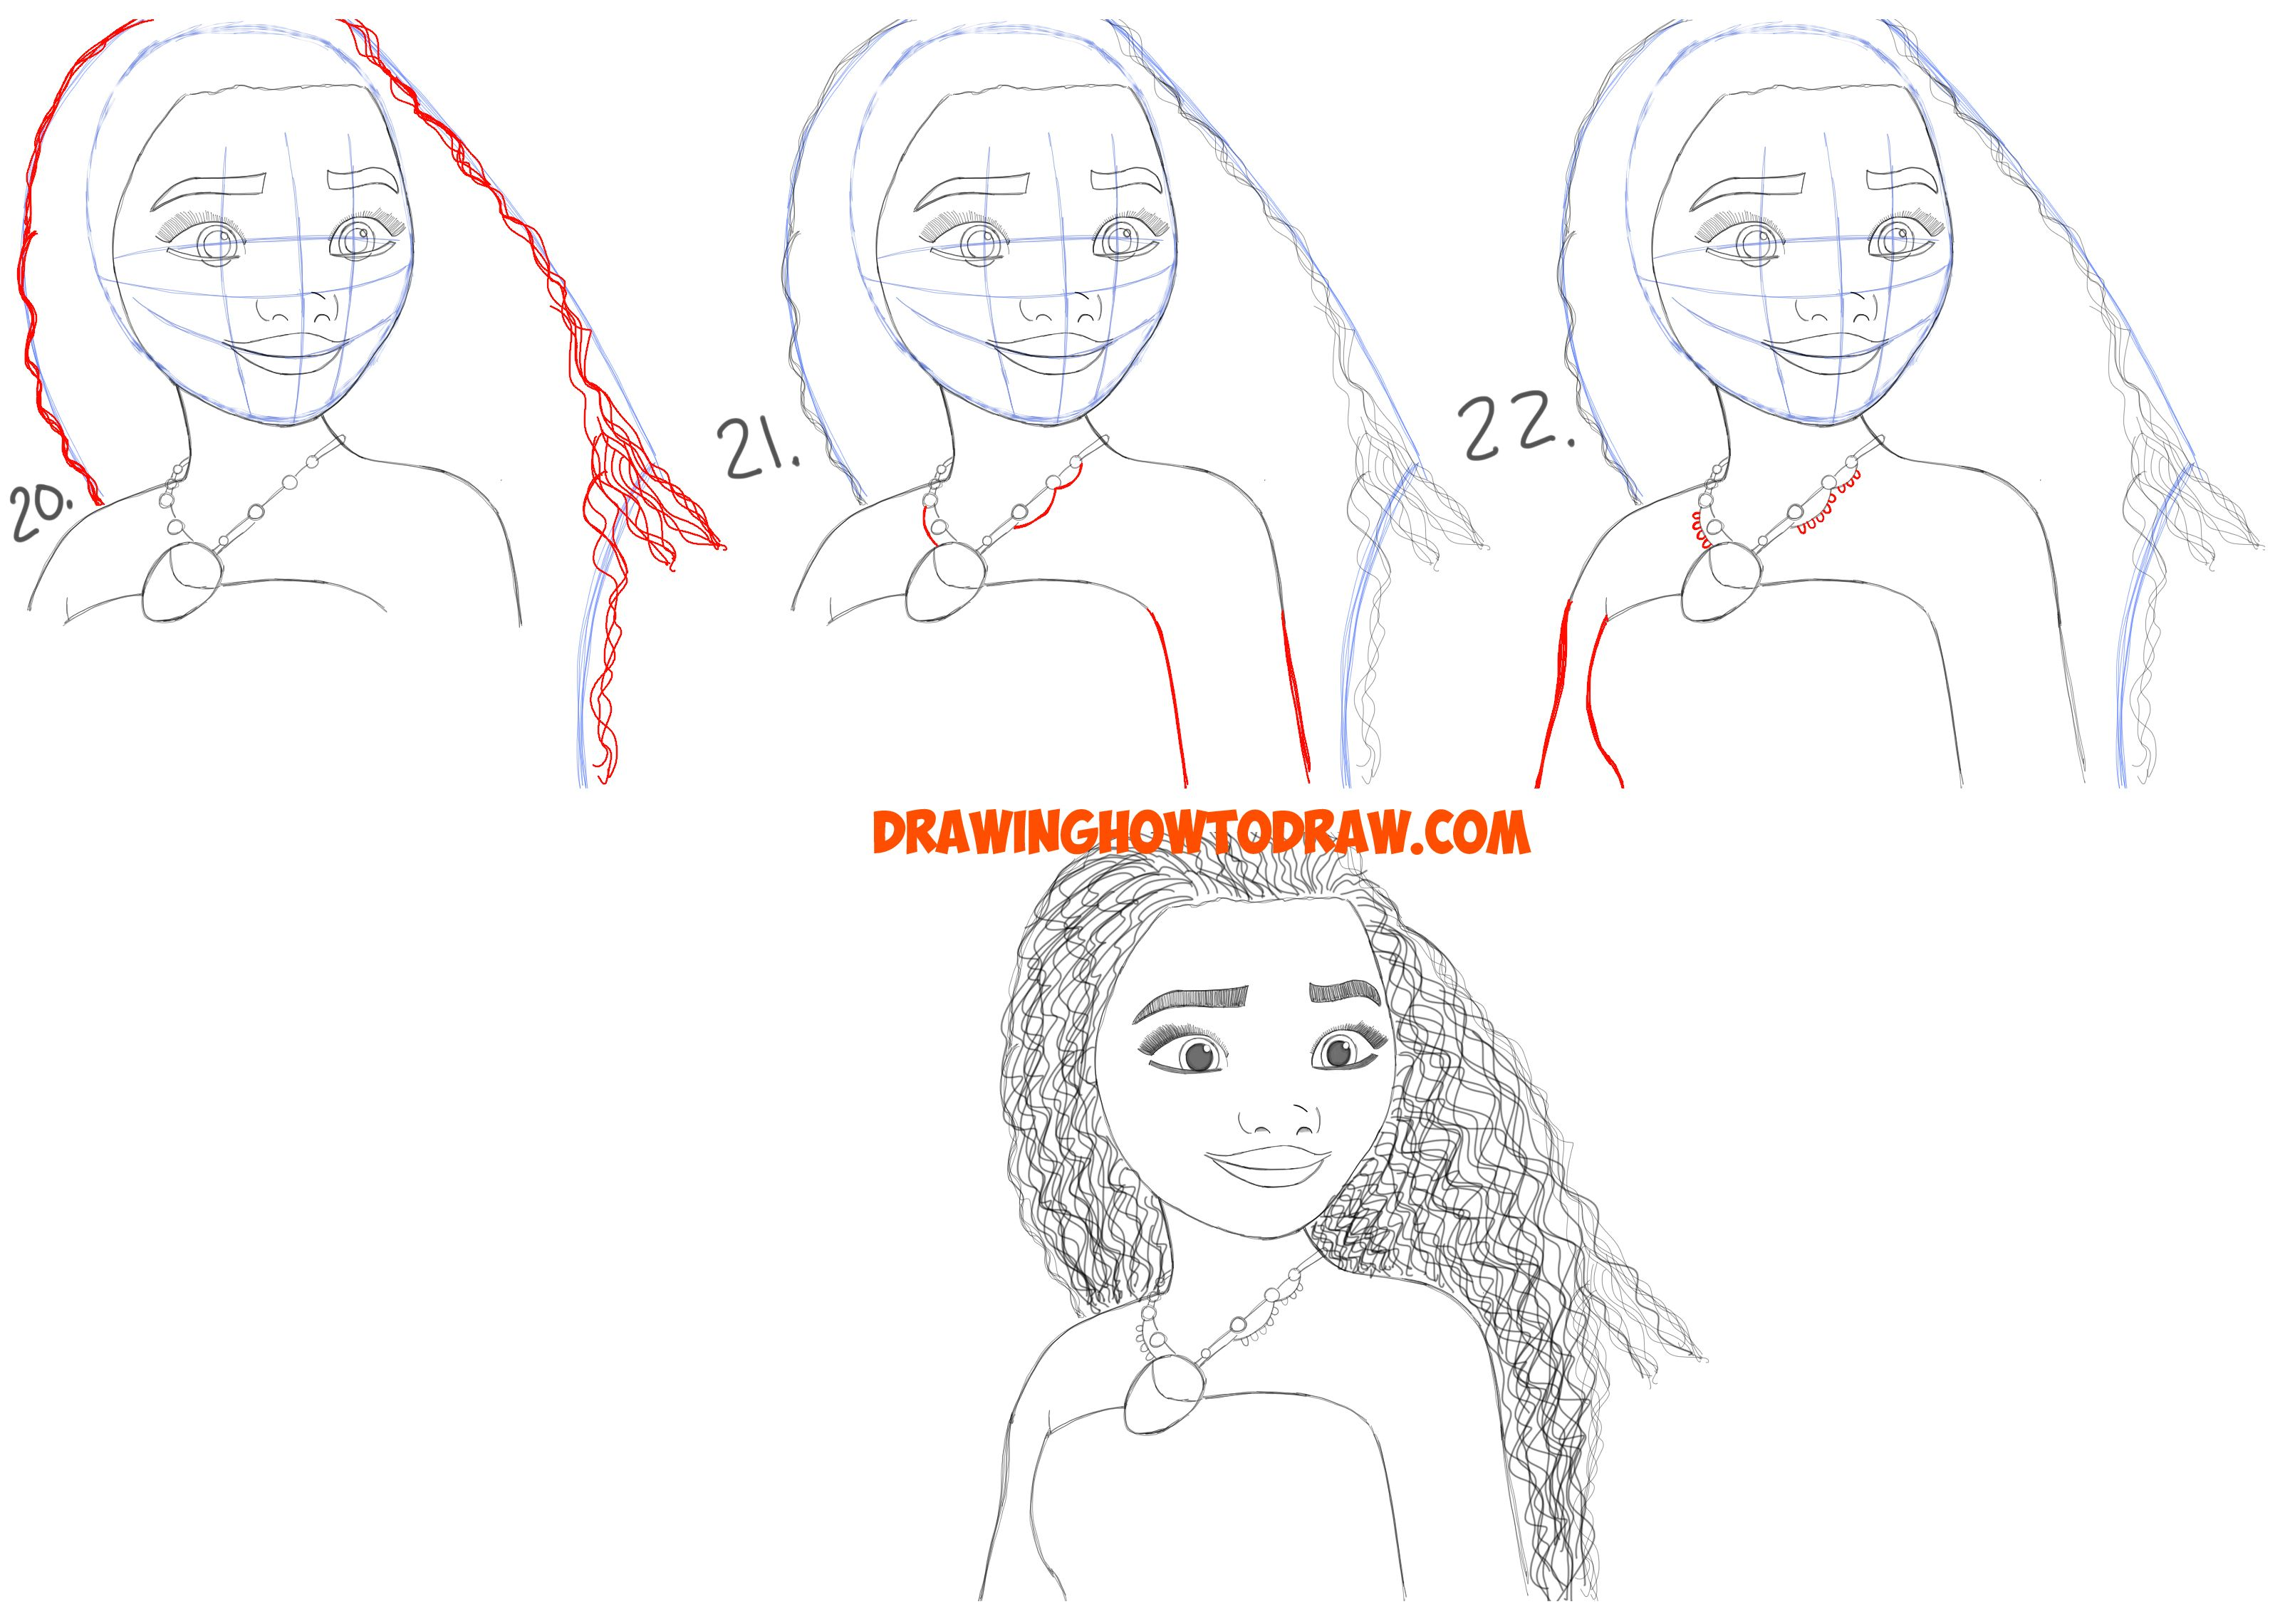 How To Draw Moana Easy Step By Step Drawing Tutorial For Kids And Beginners How To Draw Step By Step Drawing Tutorials Drawing Tutorial Cool Drawings Drawing Tutorials For Kids